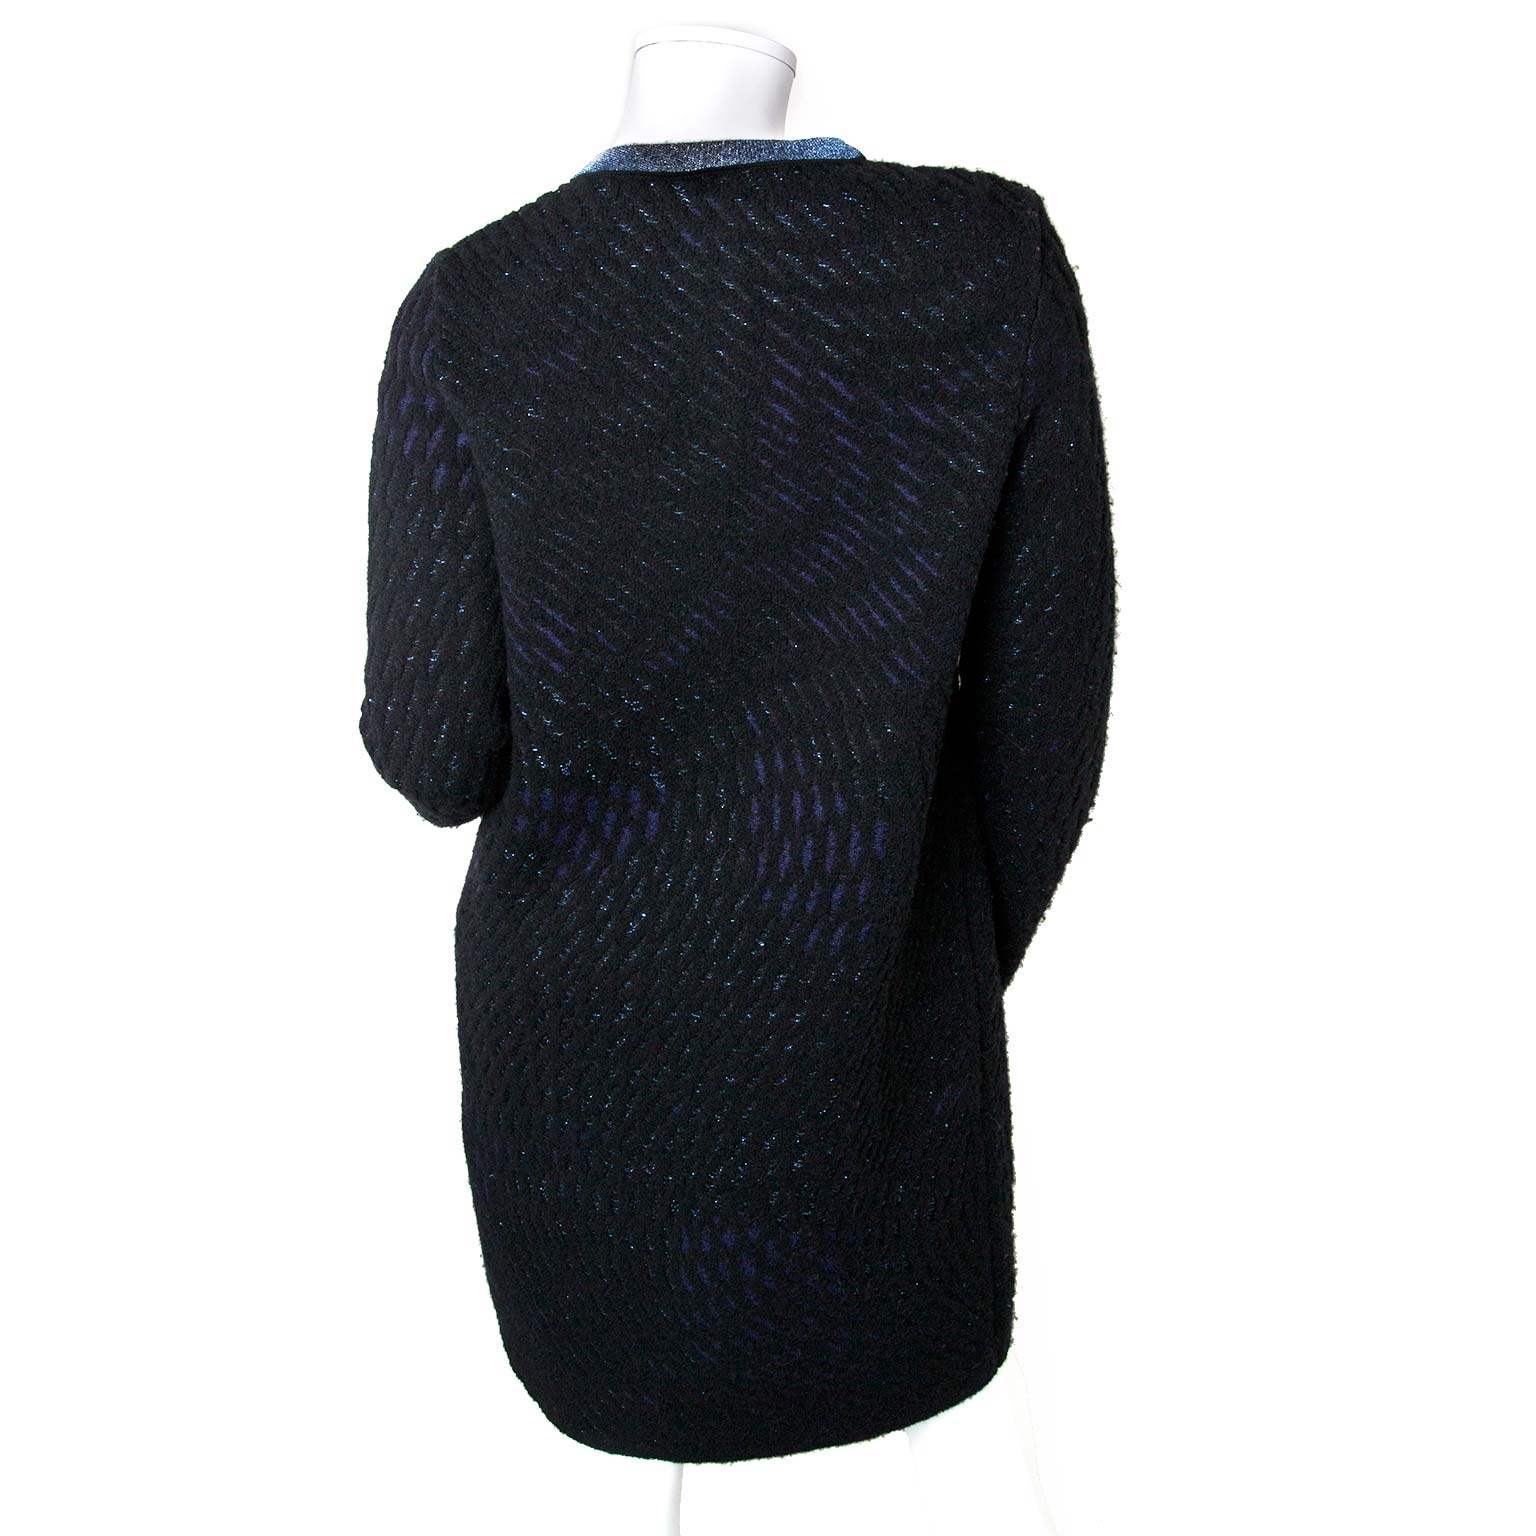 1eff7e36d676c6 Nu te Missoni Knitted Black And Blue Cardigan - Size 40 now online at  labellov.com for